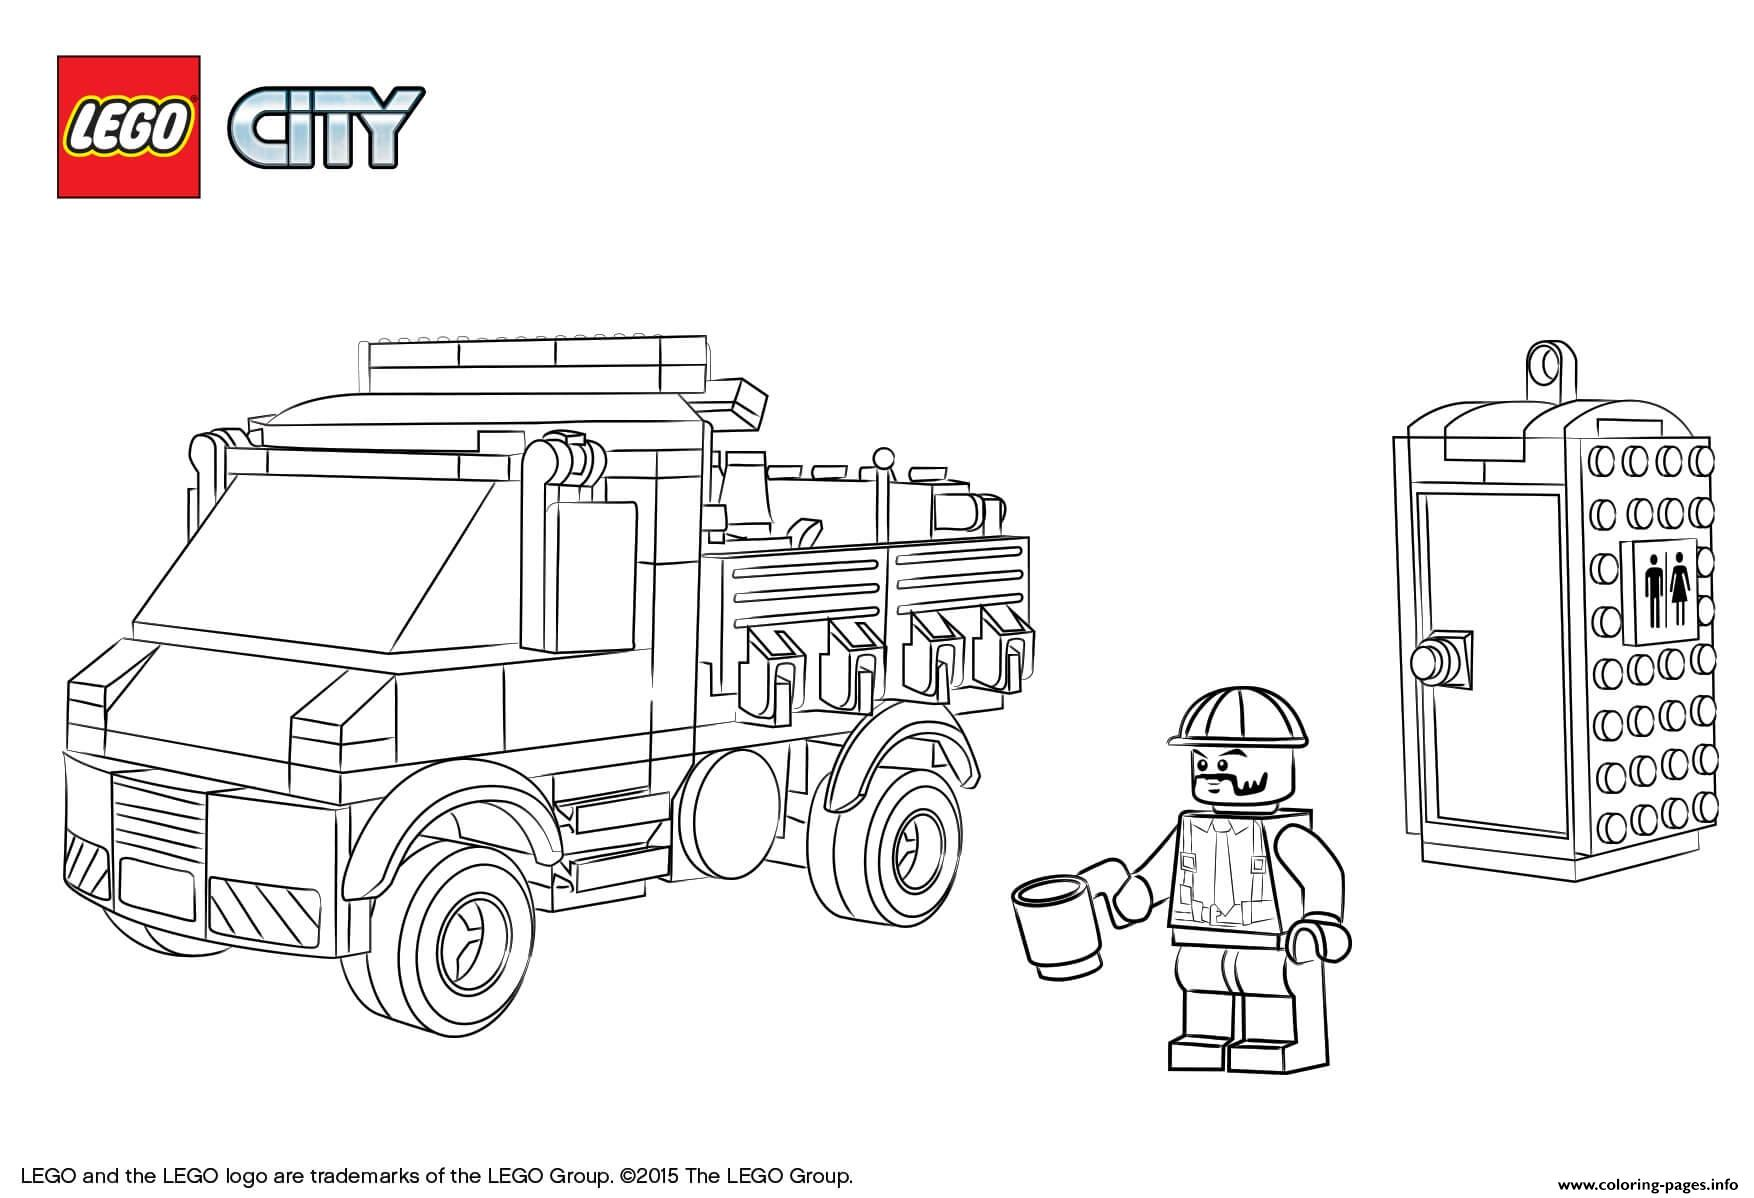 Lego City Service Truck Coloring Pages Printable